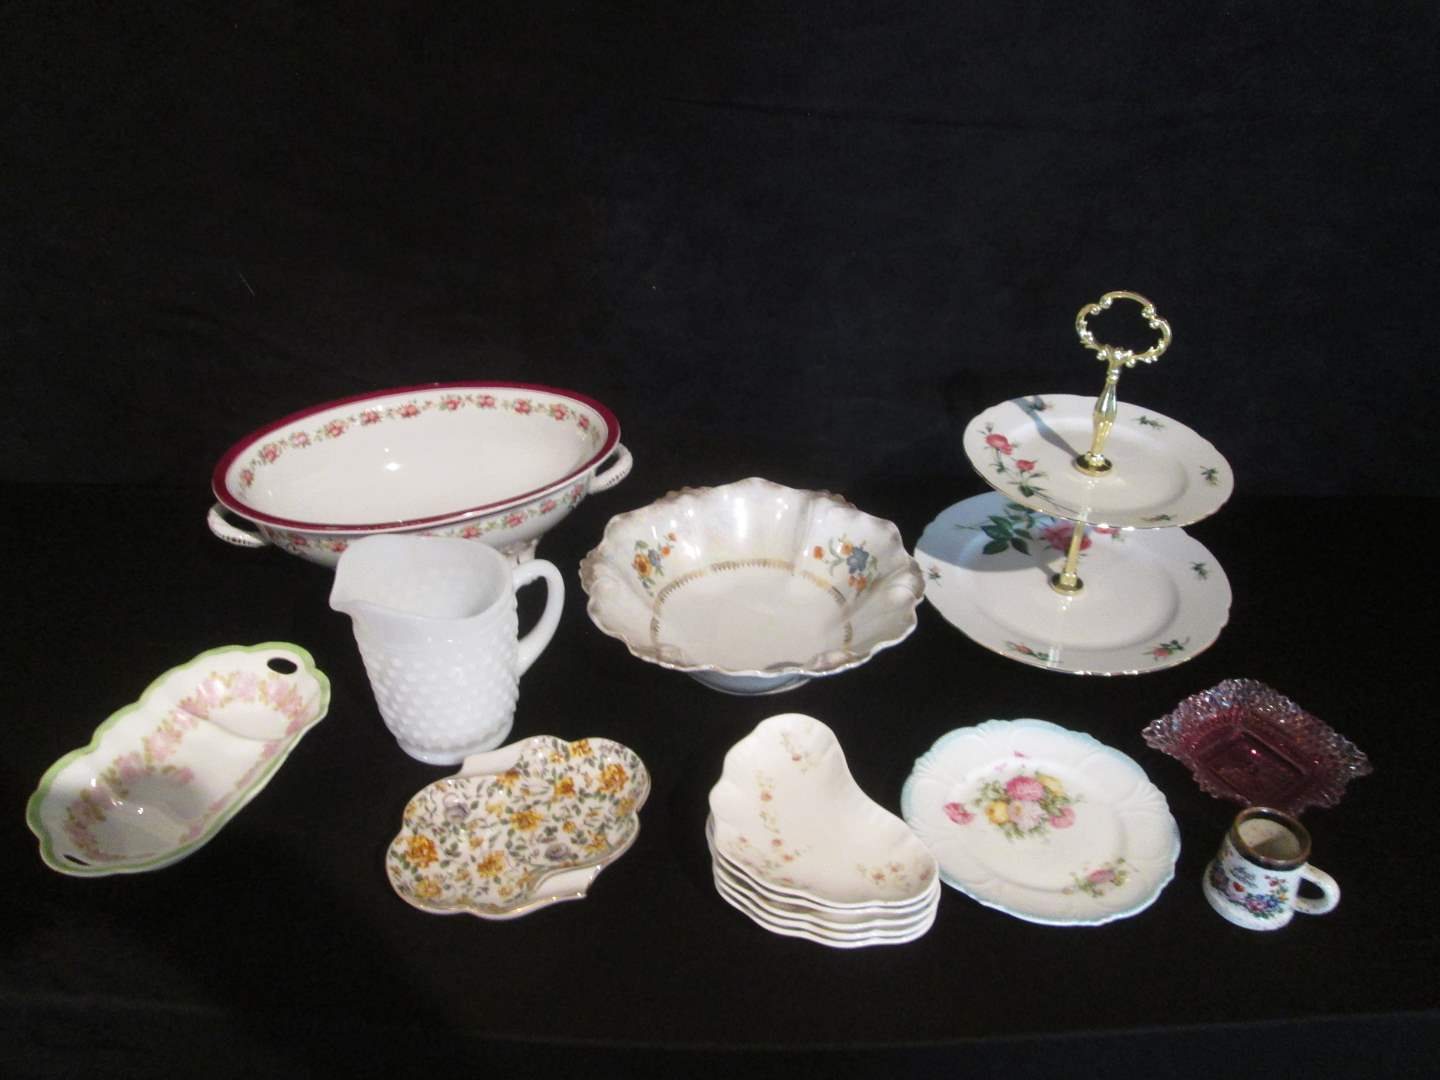 Lot # 23 - Assorted Collection of Vintage Serving Pieces, 14 Items (main image)